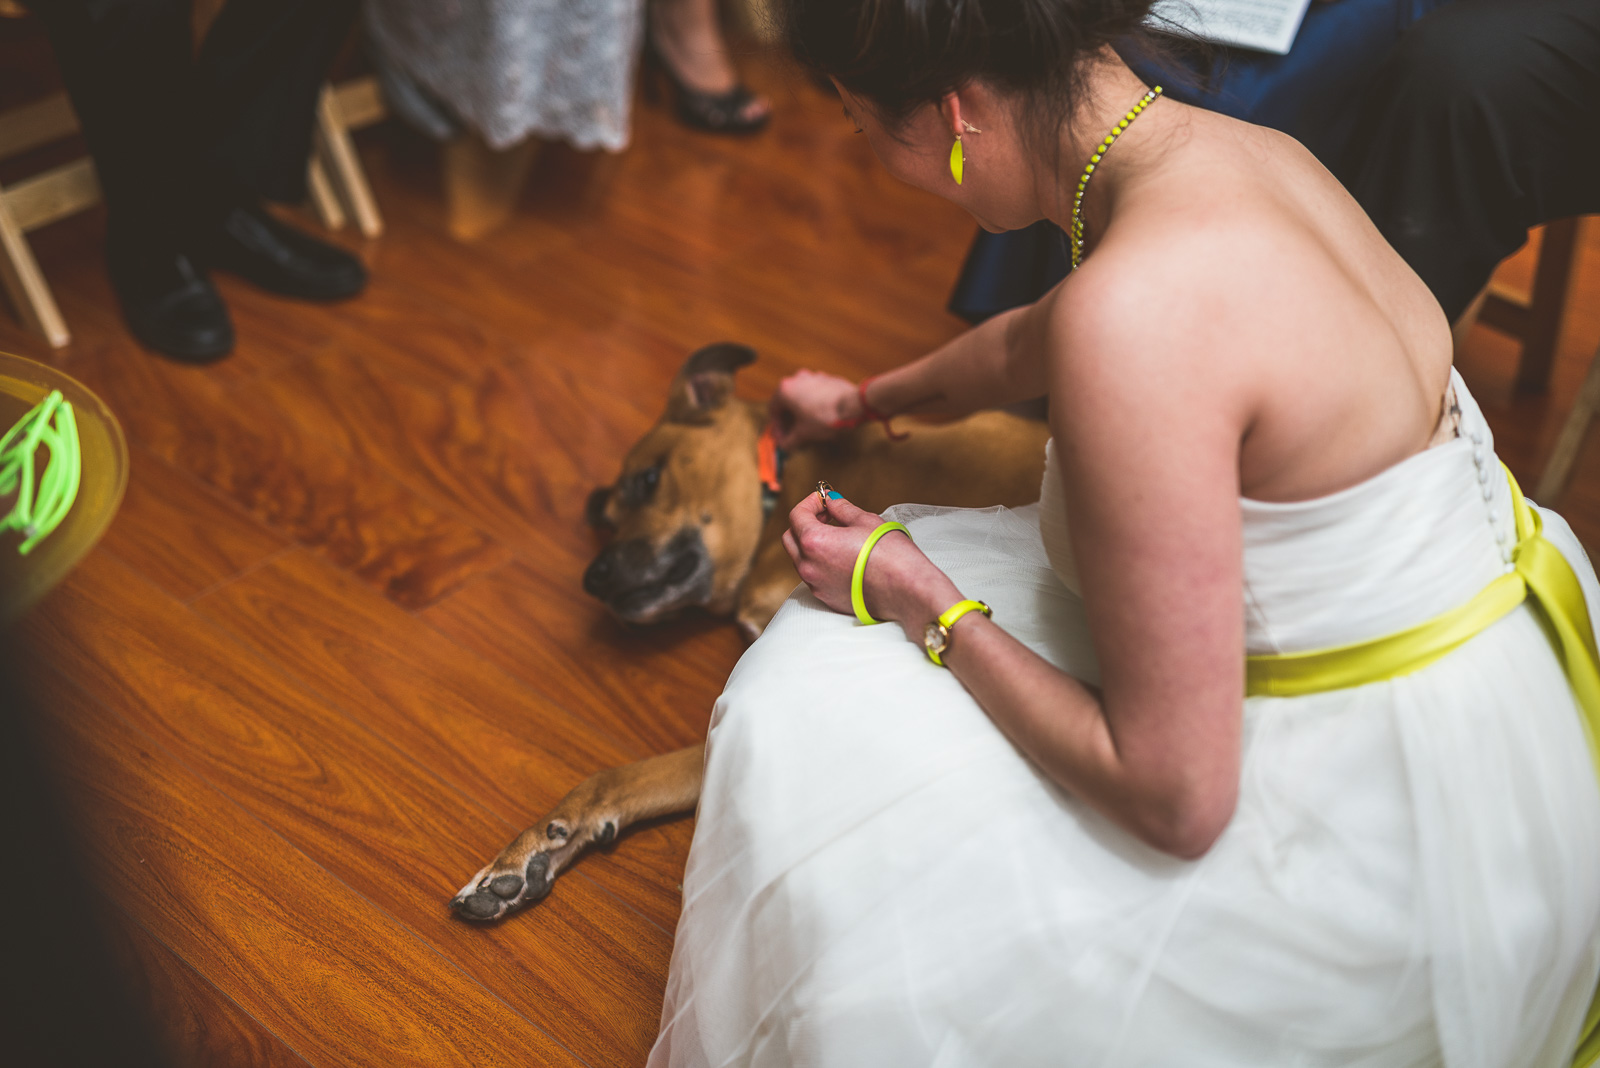 31 doggie has rings - Jackie + Raj // Chicago Wedding Photography at Floating World Gallery